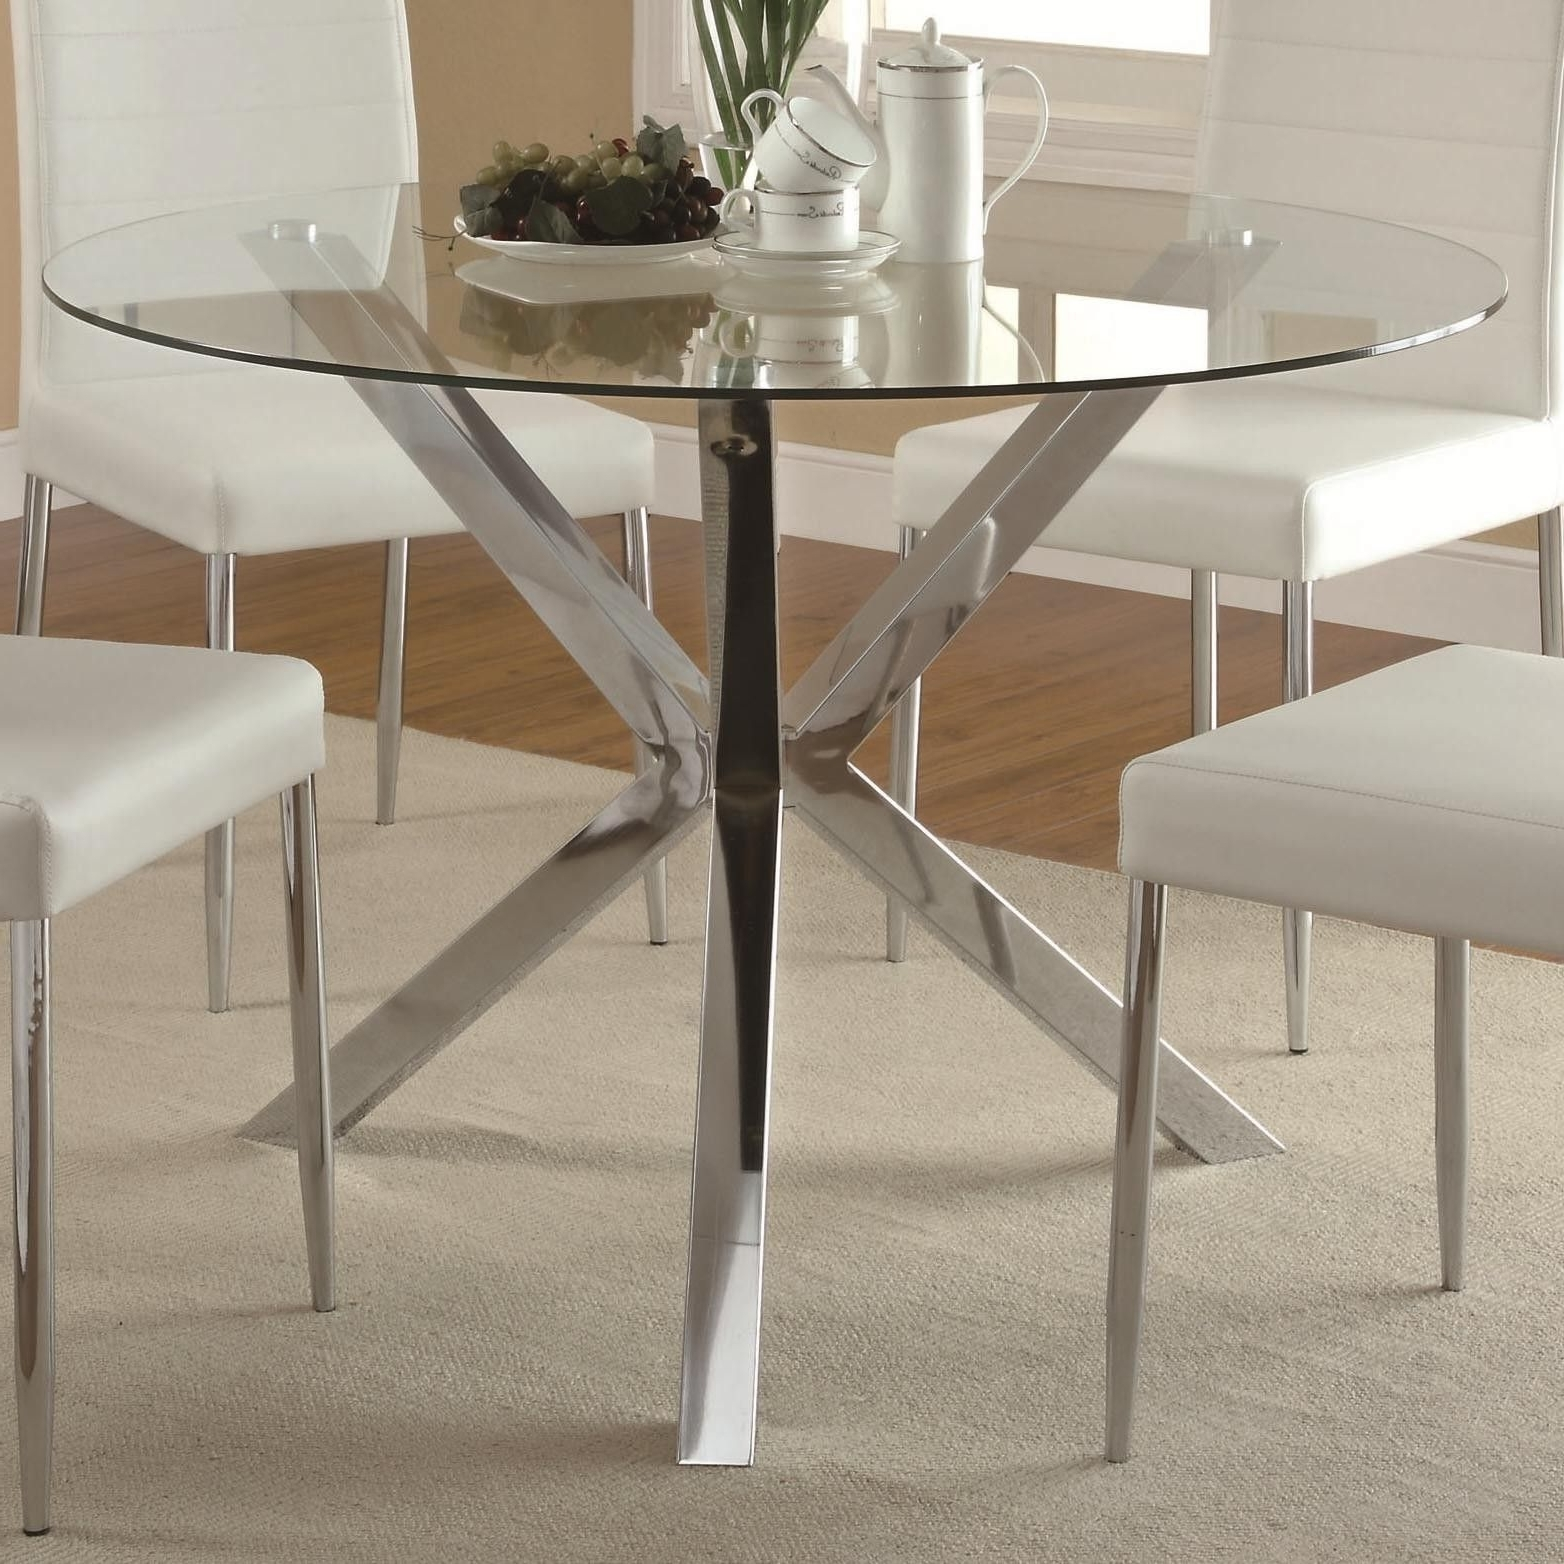 Vance Glass Top Dining Table With Unique Chrome Base 120760 Qlx1 Inside Newest Lassen 5 Piece Round Dining Sets (View 5 of 25)